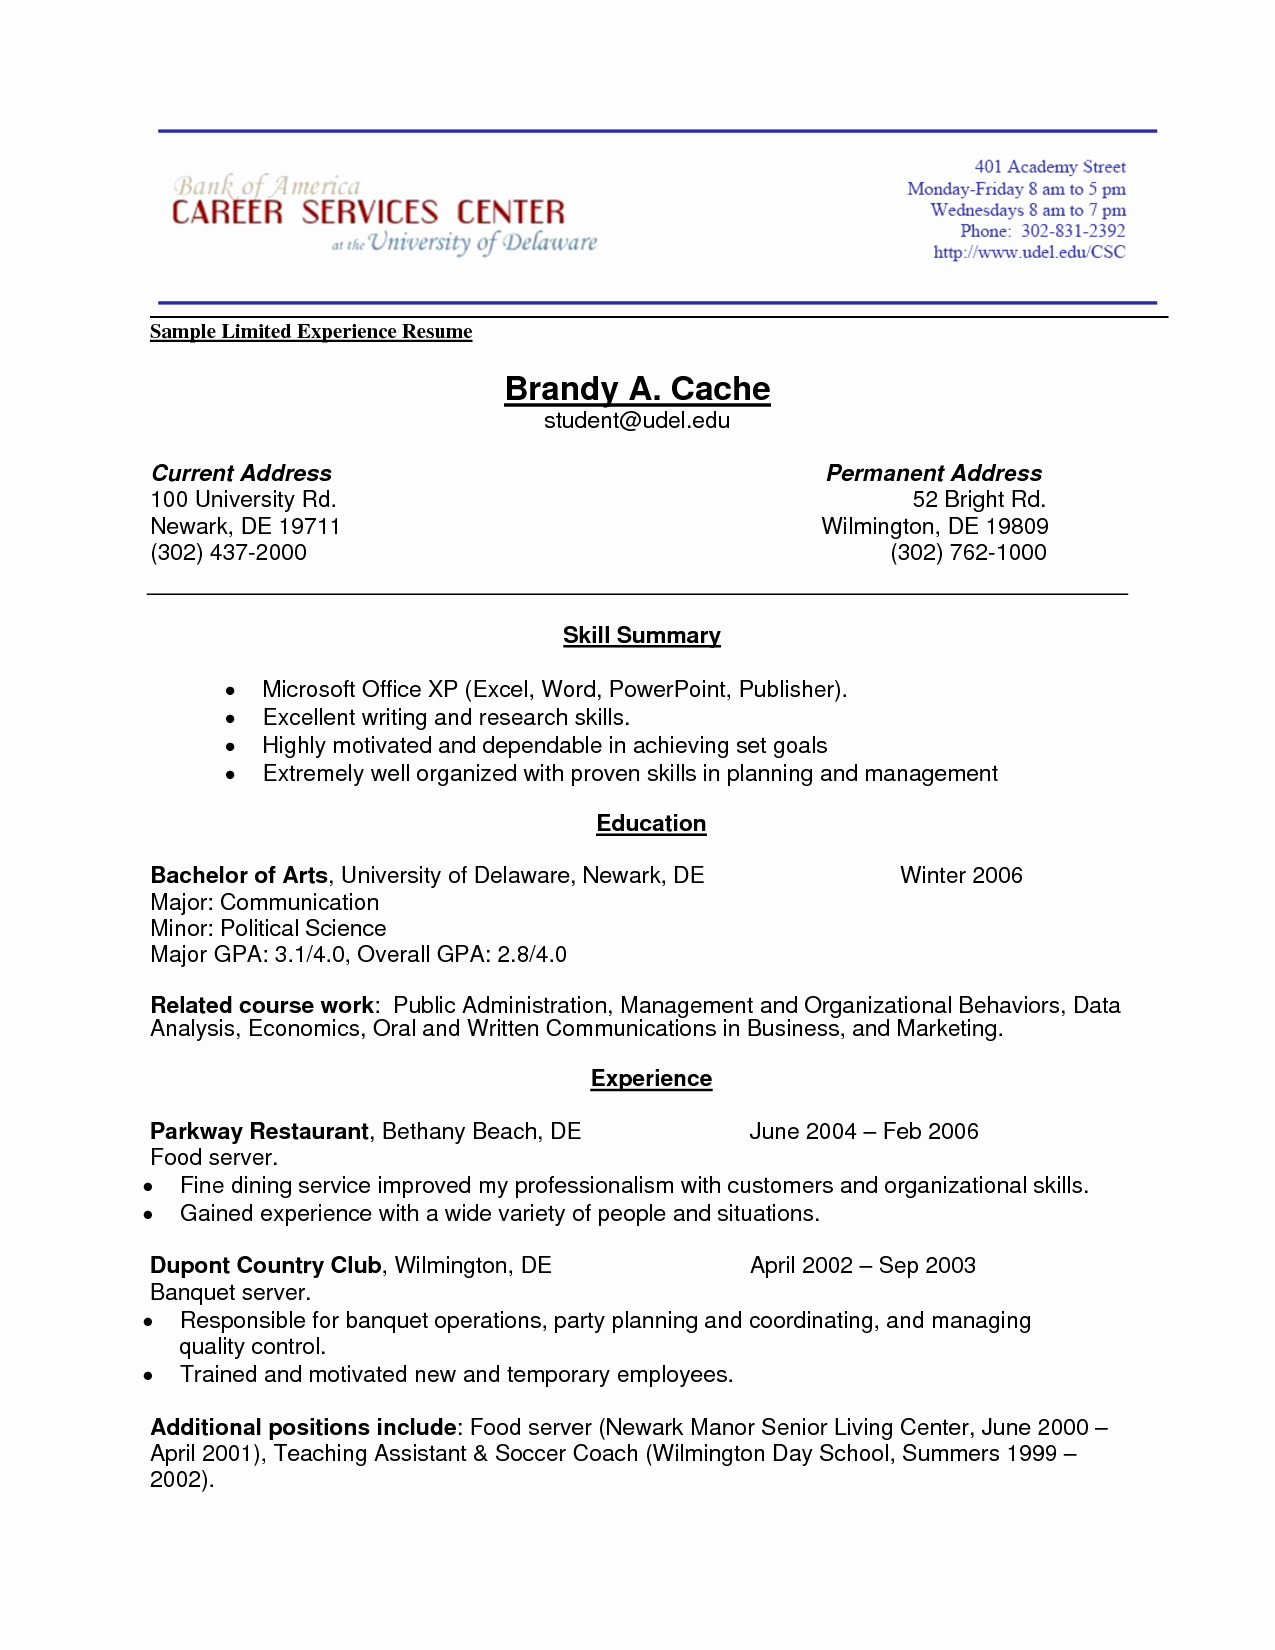 Resumes Work Experience order